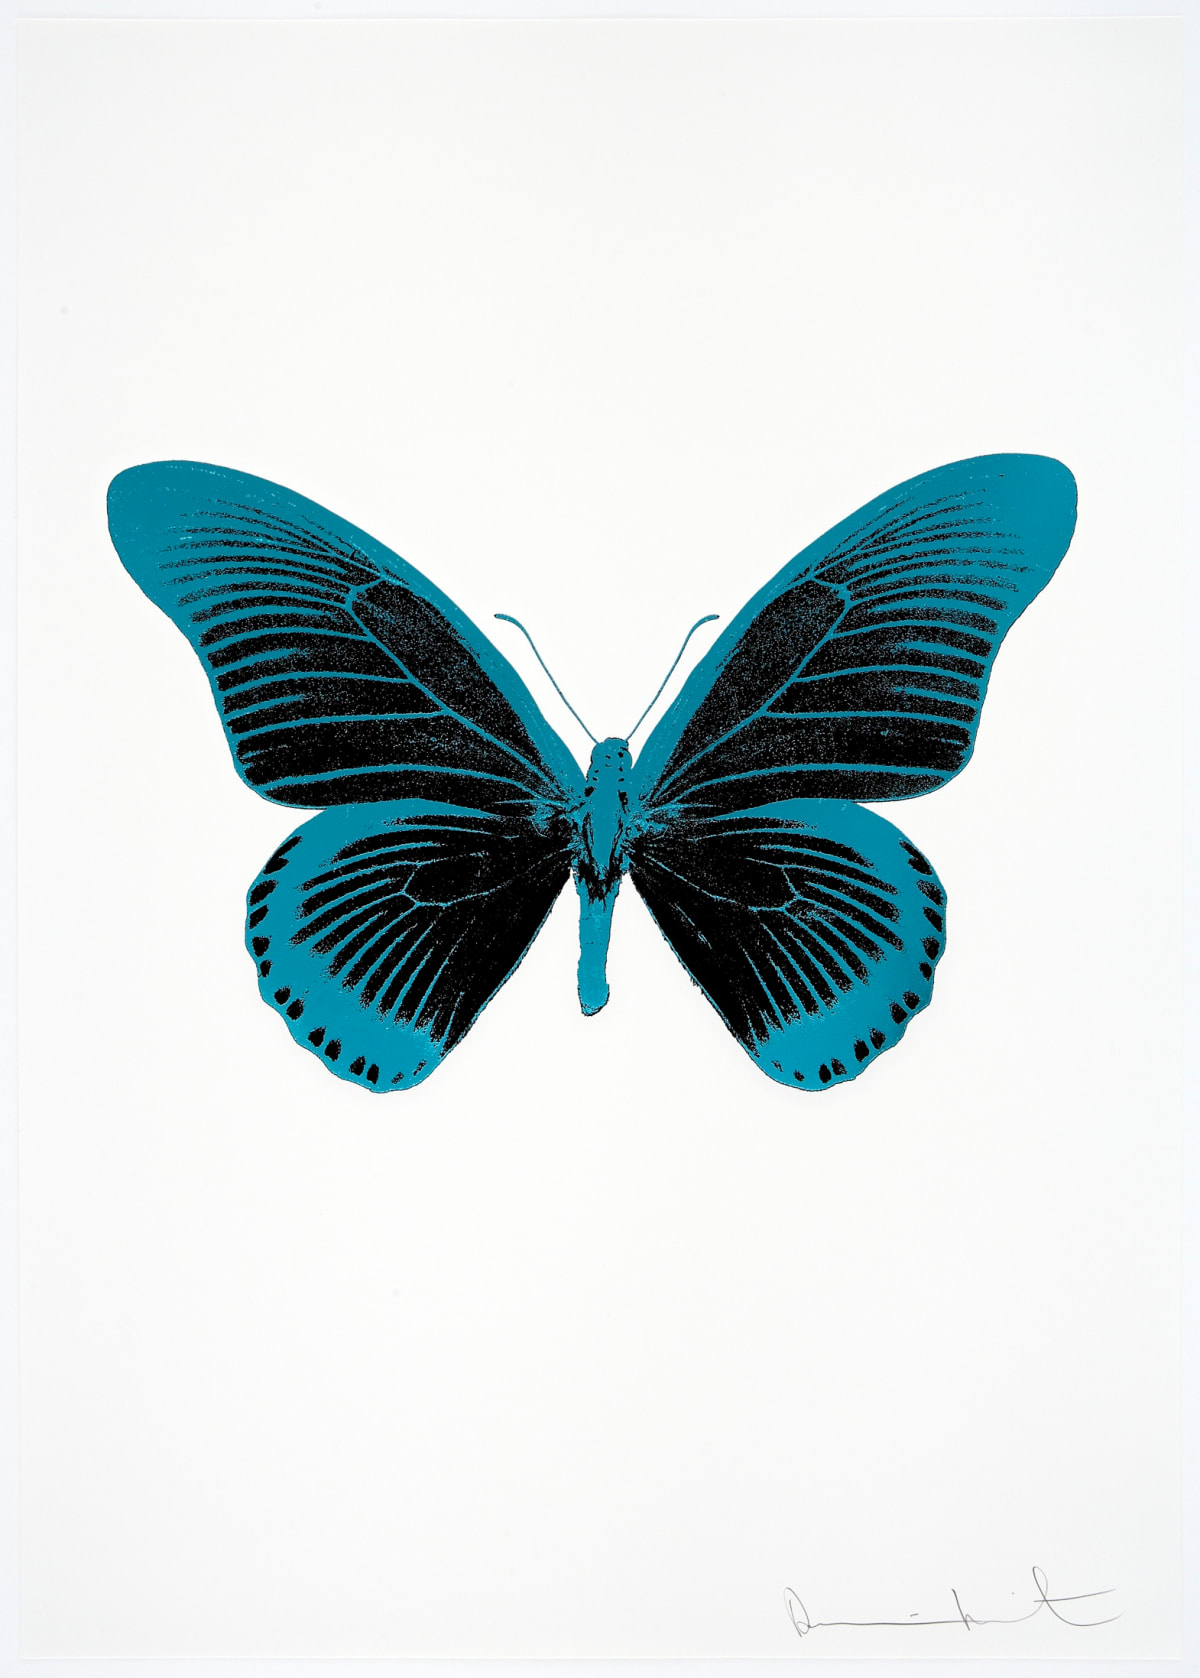 Damien Hirst The Souls IV - Raven Black/Topaz/Topaz, 2010 3 colour foil block on 300gsm Arches 88 archival paper. Signed and numbered. Published by Paul Stolper and Other Criteria 72 x 51cm OC8017 / 1418-40 Edition of 15